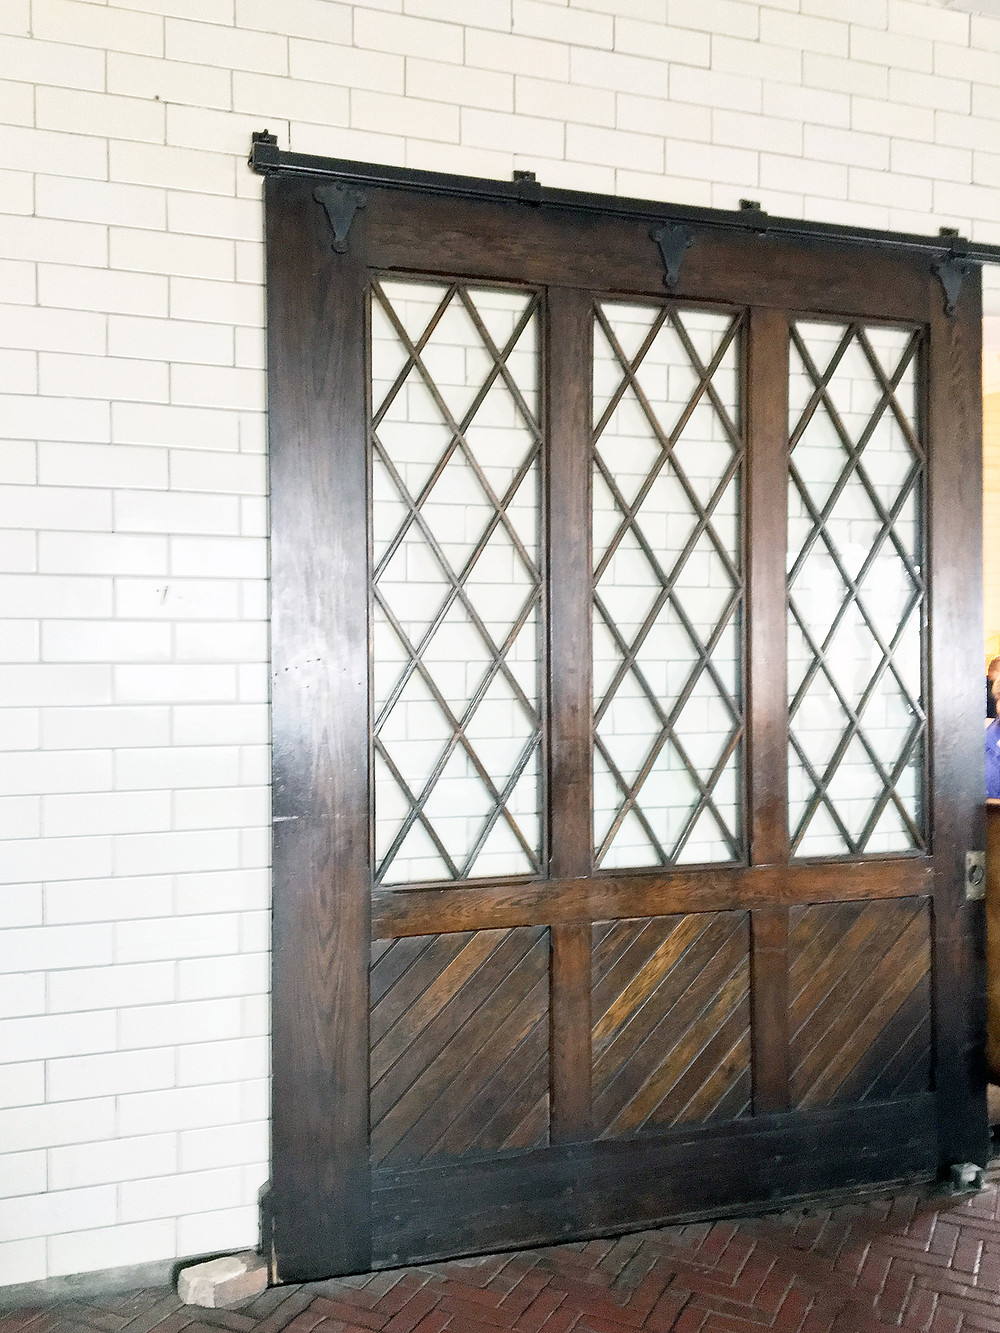 EH Design Blog - Carriage House of the glass and wood doors separating the carriages from the horses